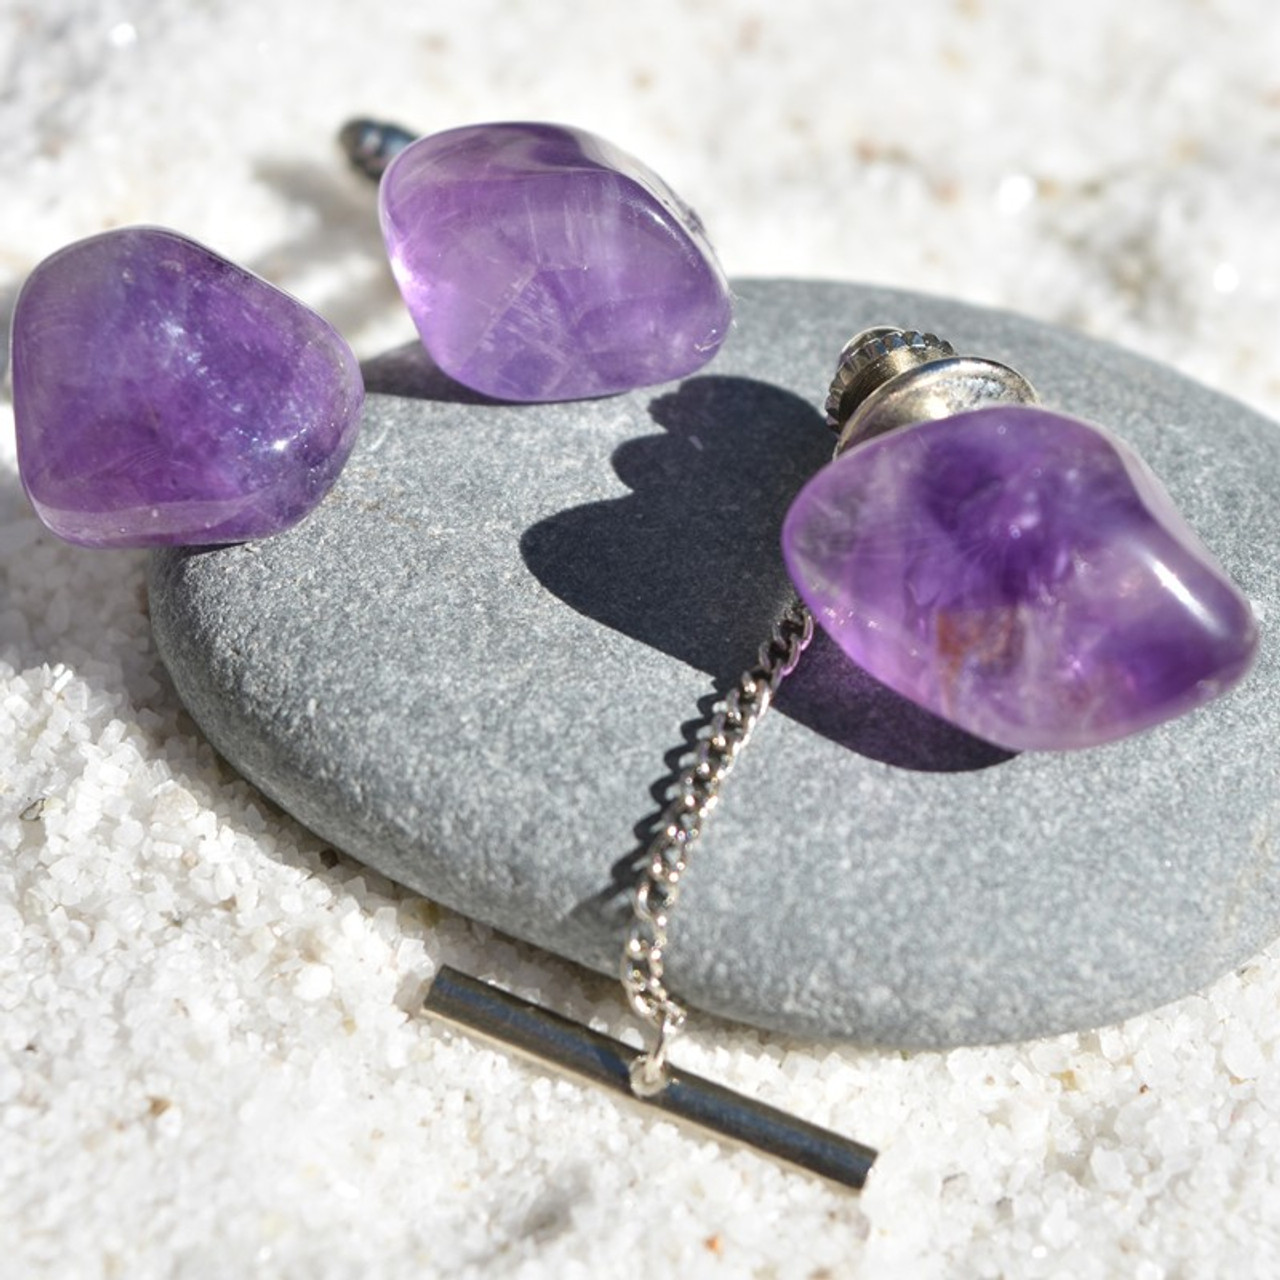 Amethyst Stone Cufflinks and Tie Tack Set